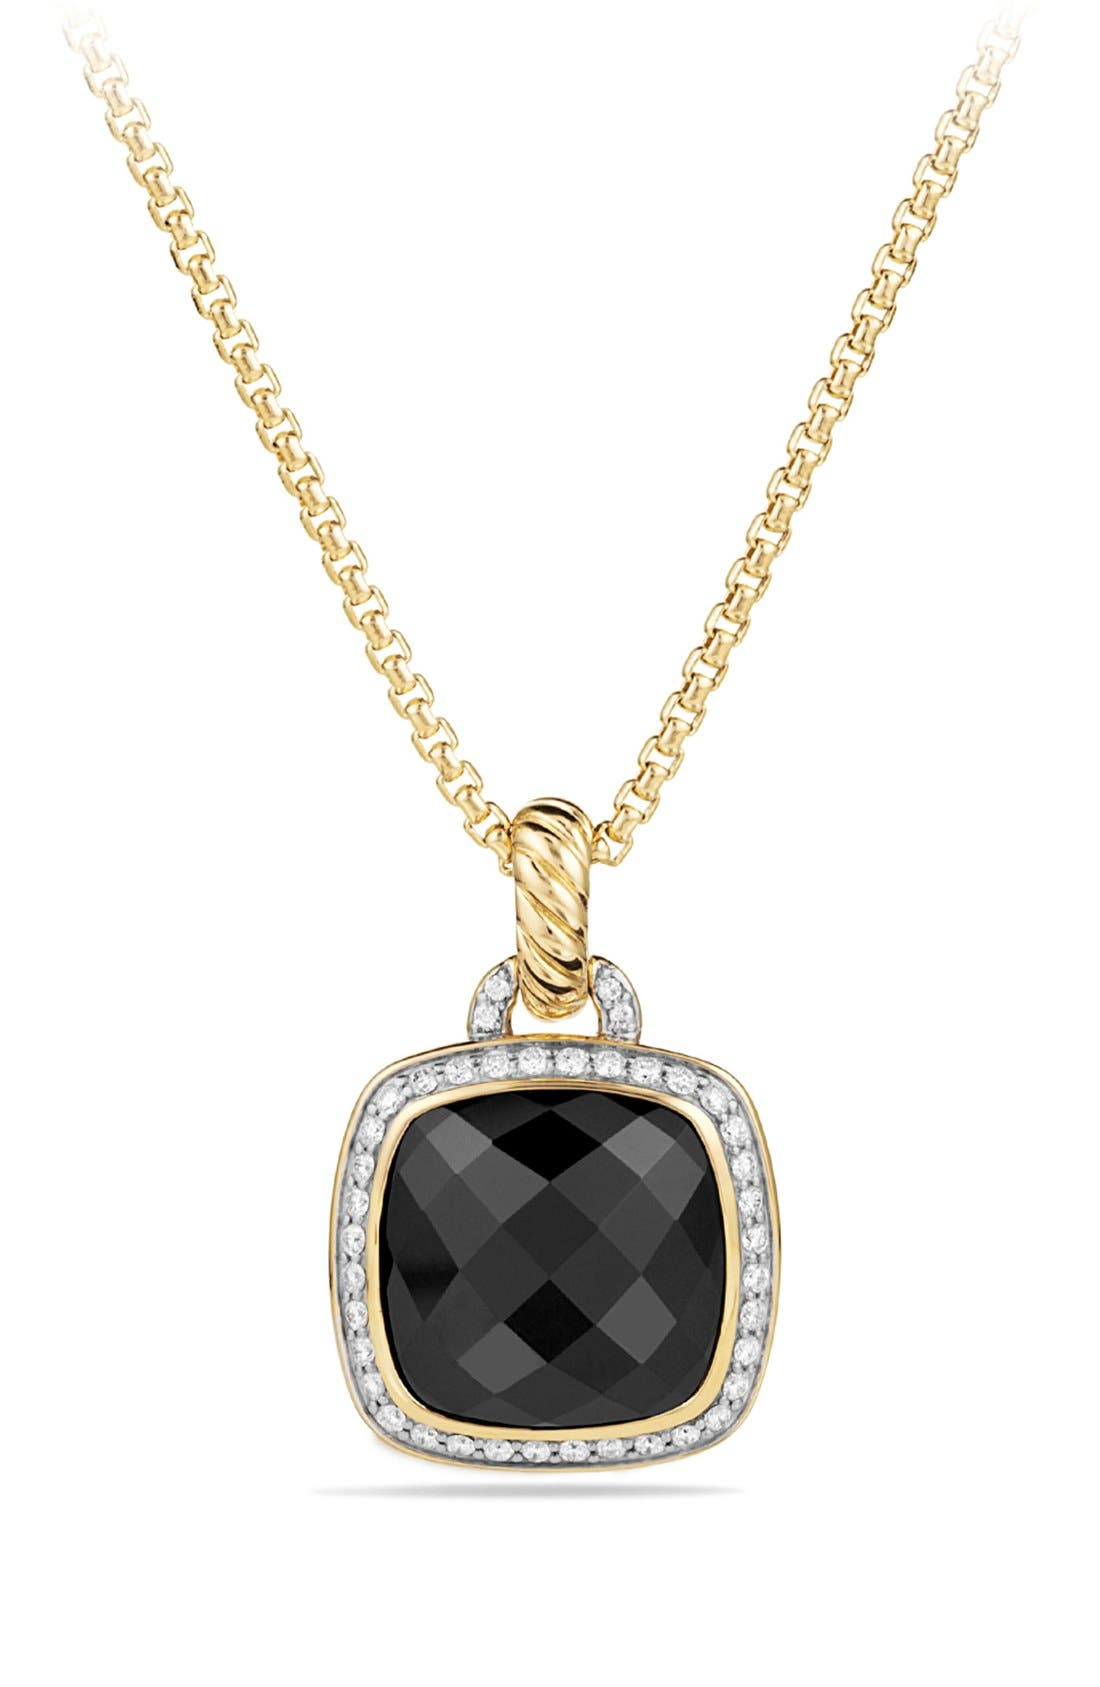 'Albion' Pendant with Lemon Citrine and Diamonds in 18k Gold,                             Main thumbnail 1, color,                             BLACK ONYX